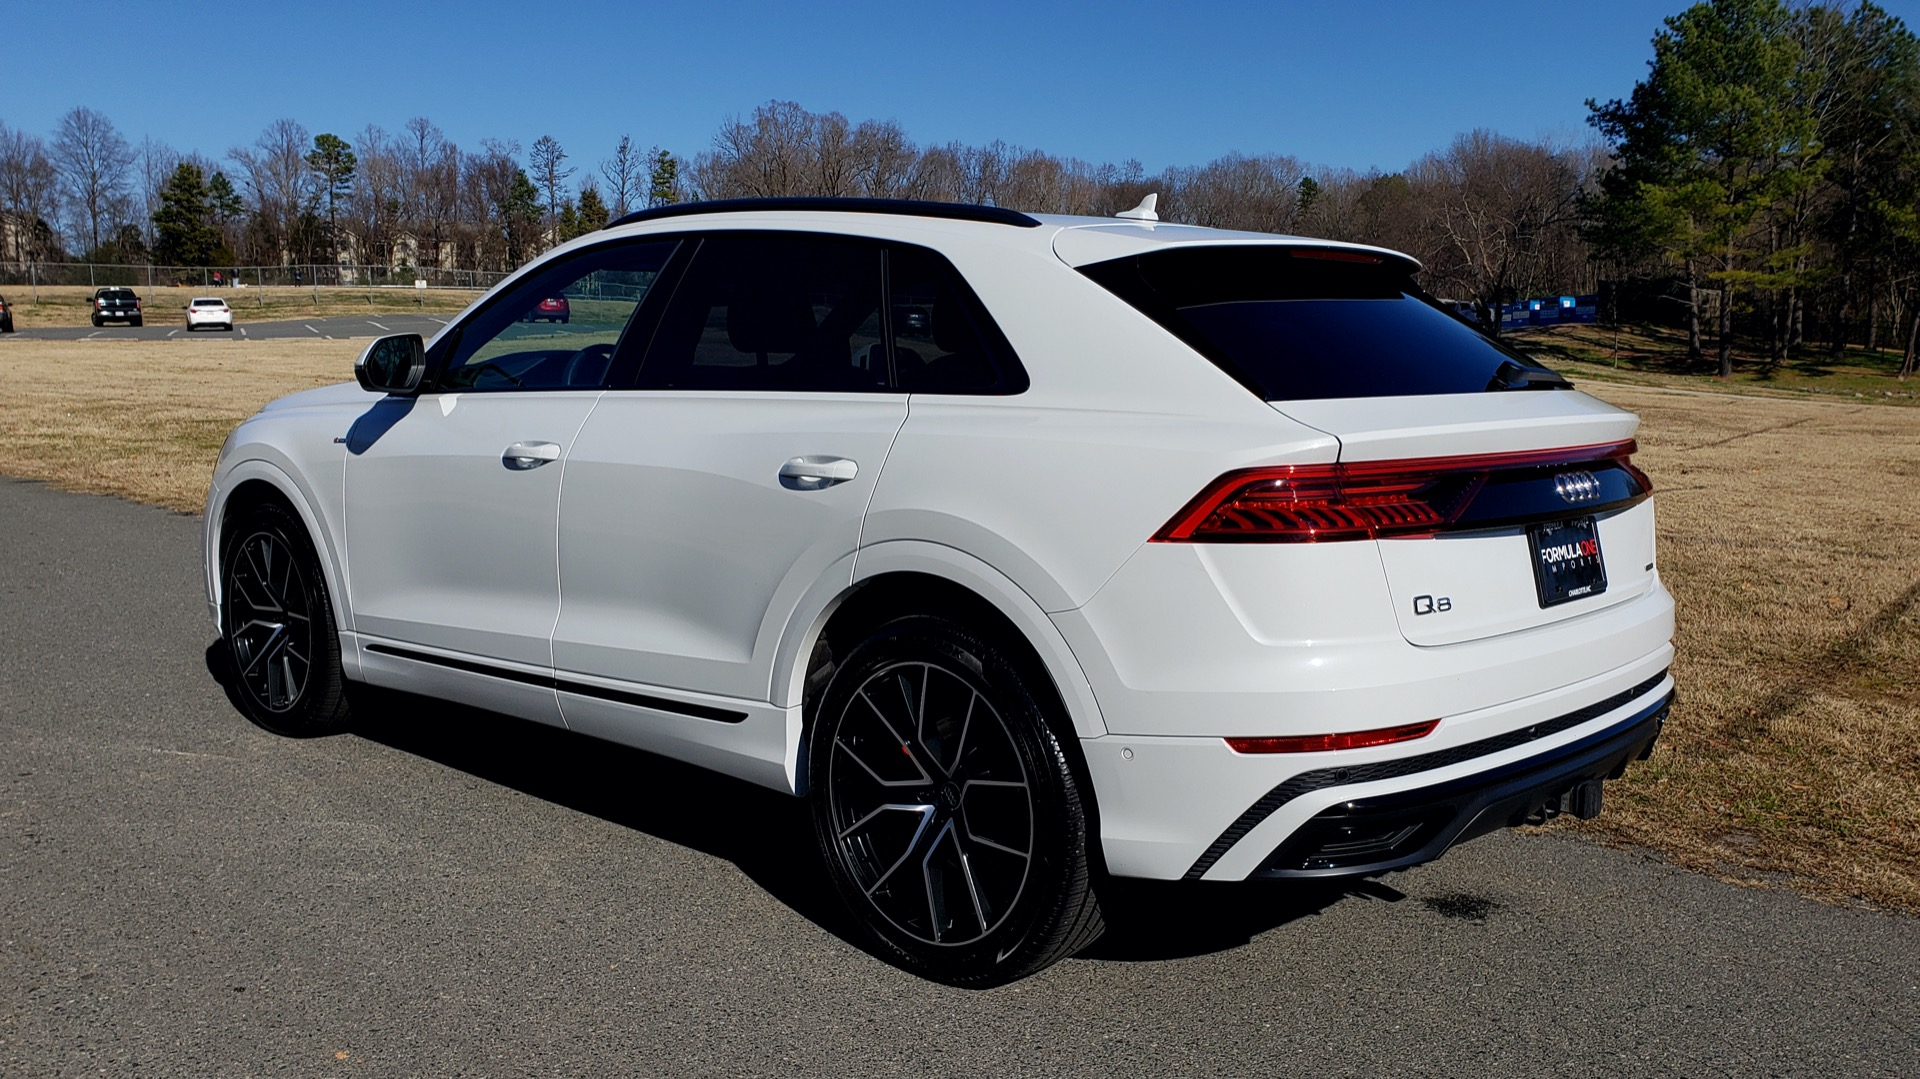 Used 2019 Audi Q8 PRESTIGE S-LINE / LUX PKG / ADAPT CHASSIS / YEAR ONE / CLD WTHR for sale Sold at Formula Imports in Charlotte NC 28227 5